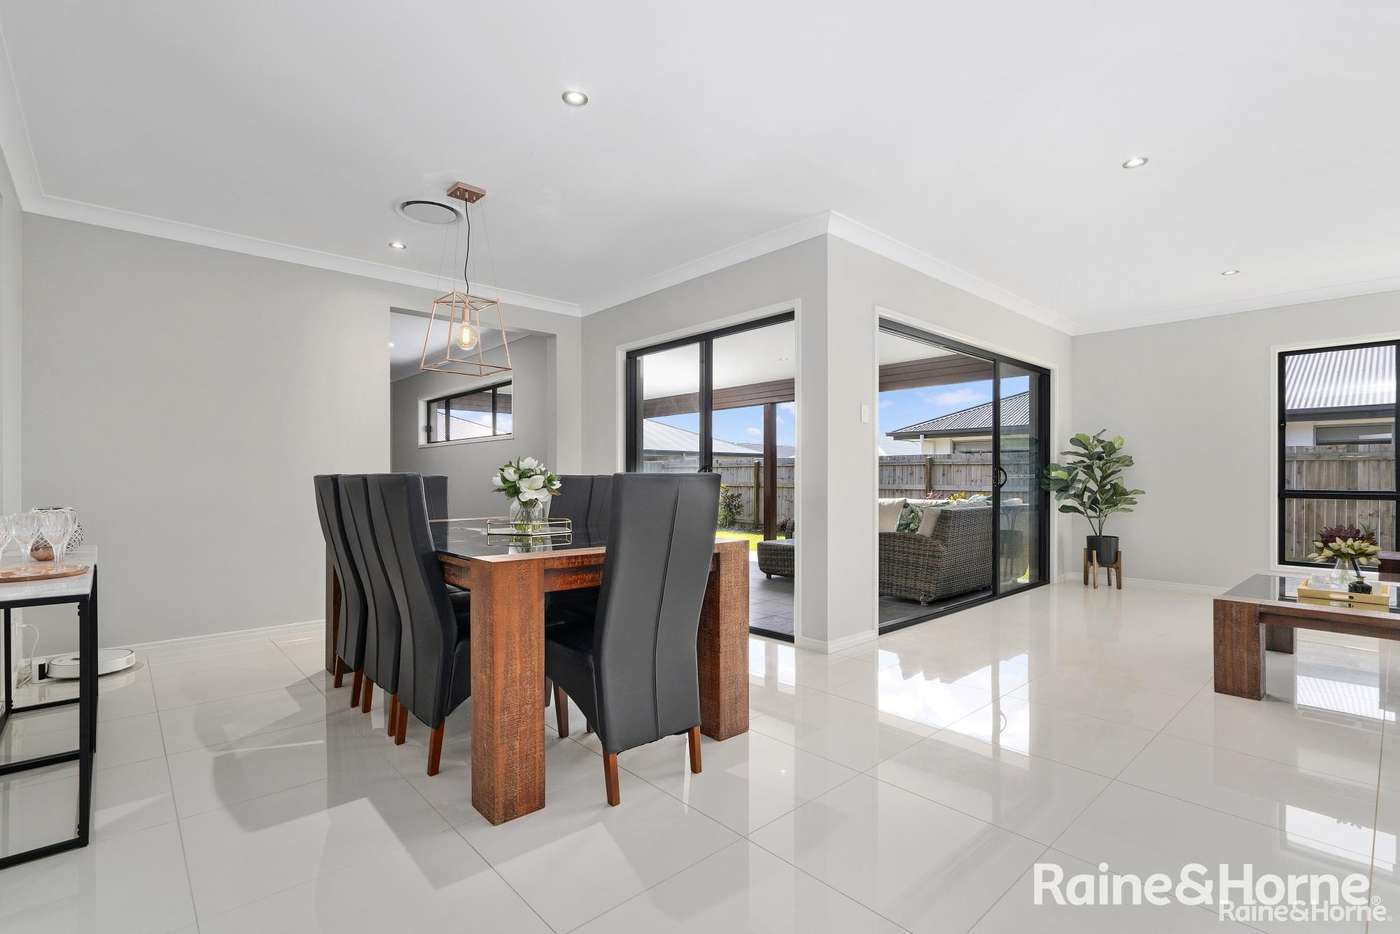 Sixth view of Homely house listing, 67 Norfolk Drive, Burpengary East QLD 4505